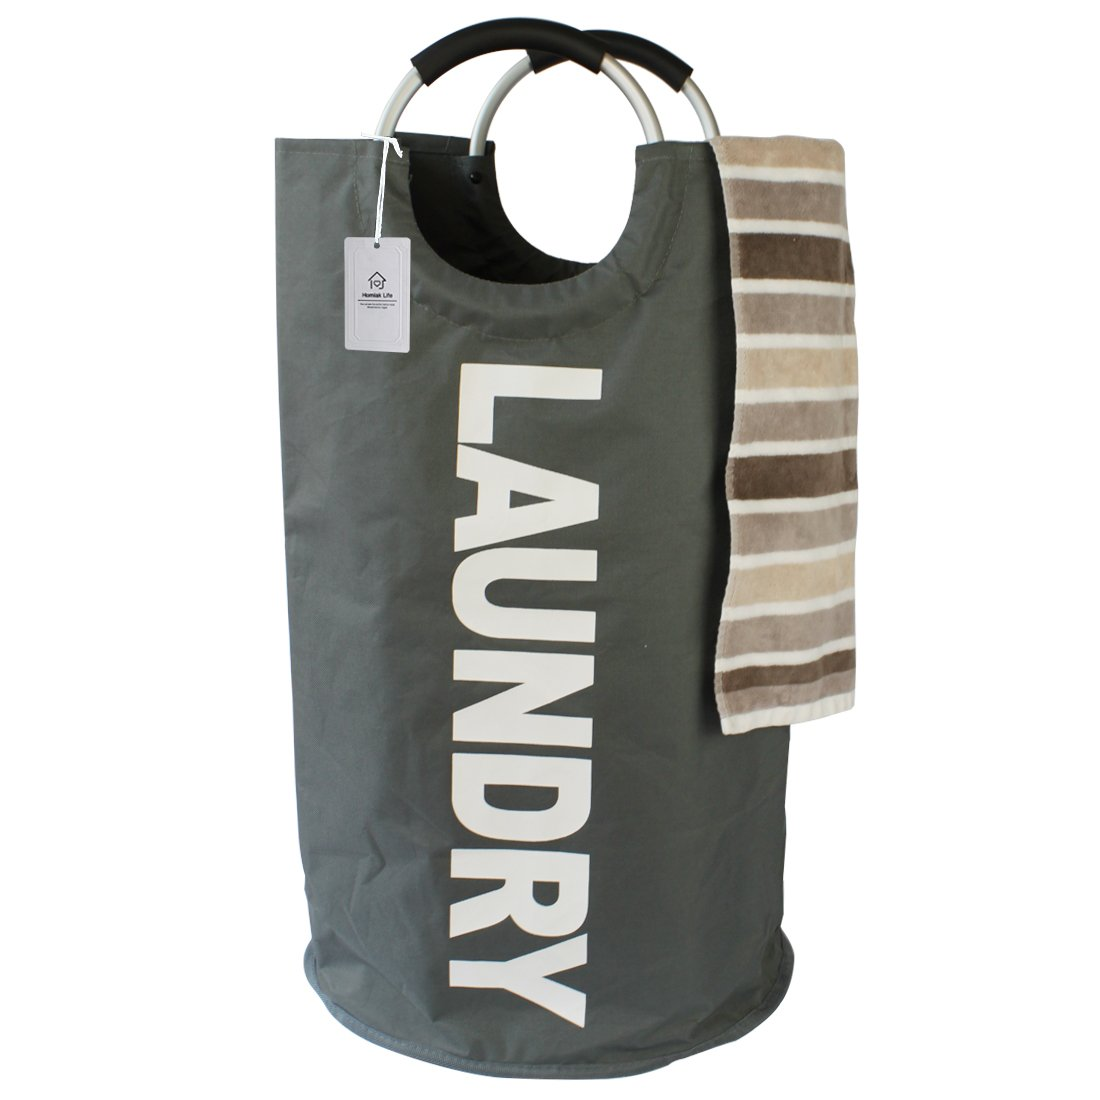 Thicken Laundry Bag with Alloy Handles for College, Camping and Home, Heavy Duty and Durable Canvas Utility, Shopping or Travel Bag, Collapsible and Self Standing as Laundry Basket (Dark Grey)